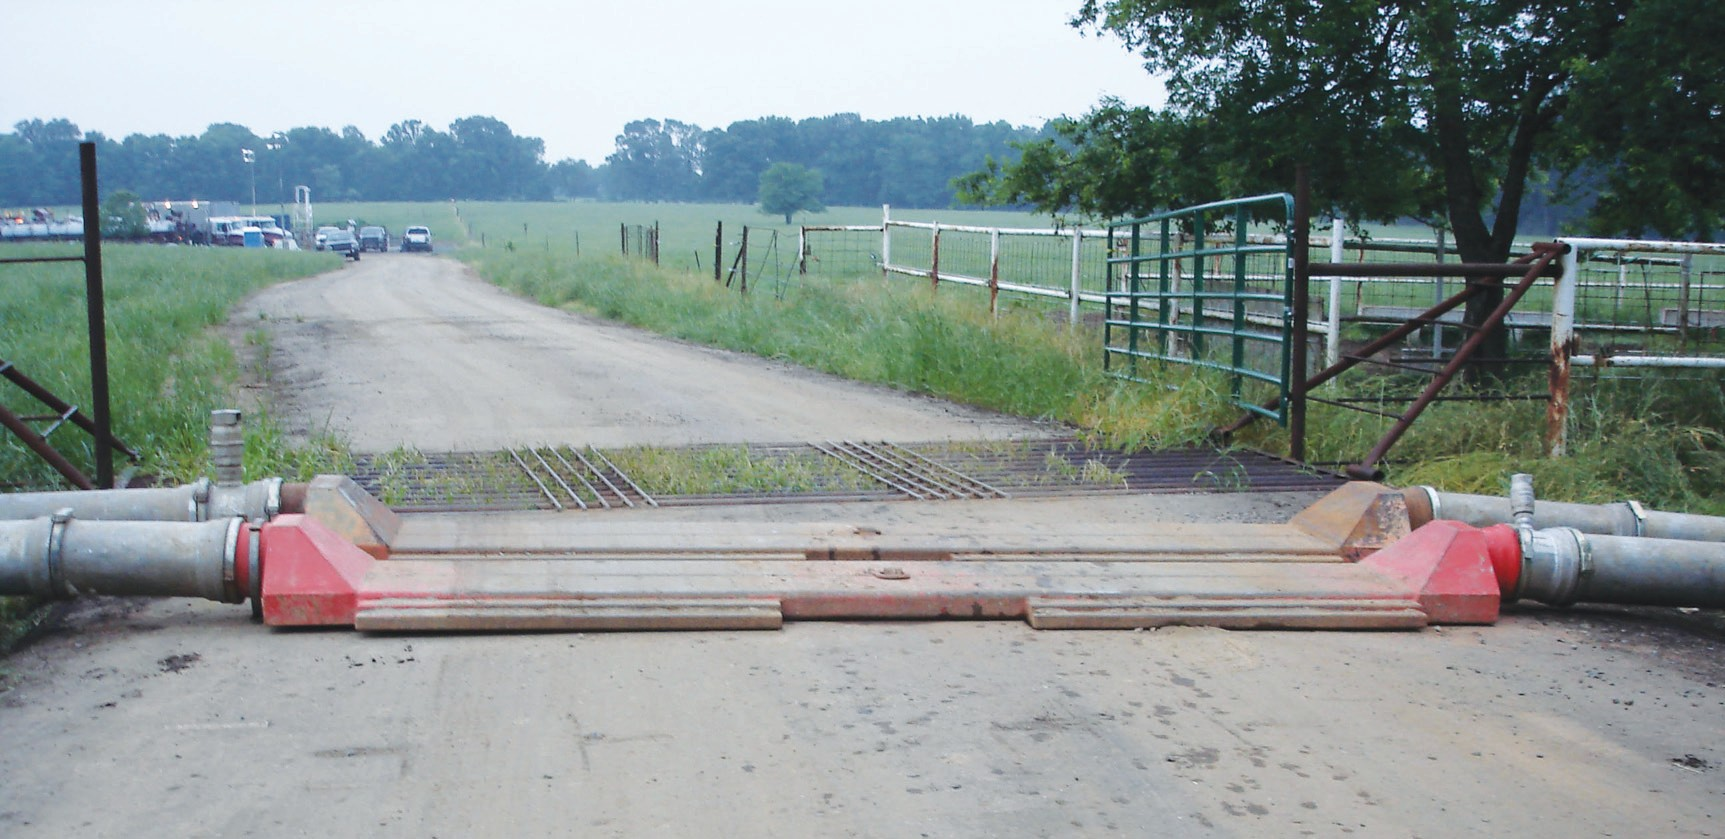 Another good example of RCW's water transfer pipe running across a cattle guard road crossing.